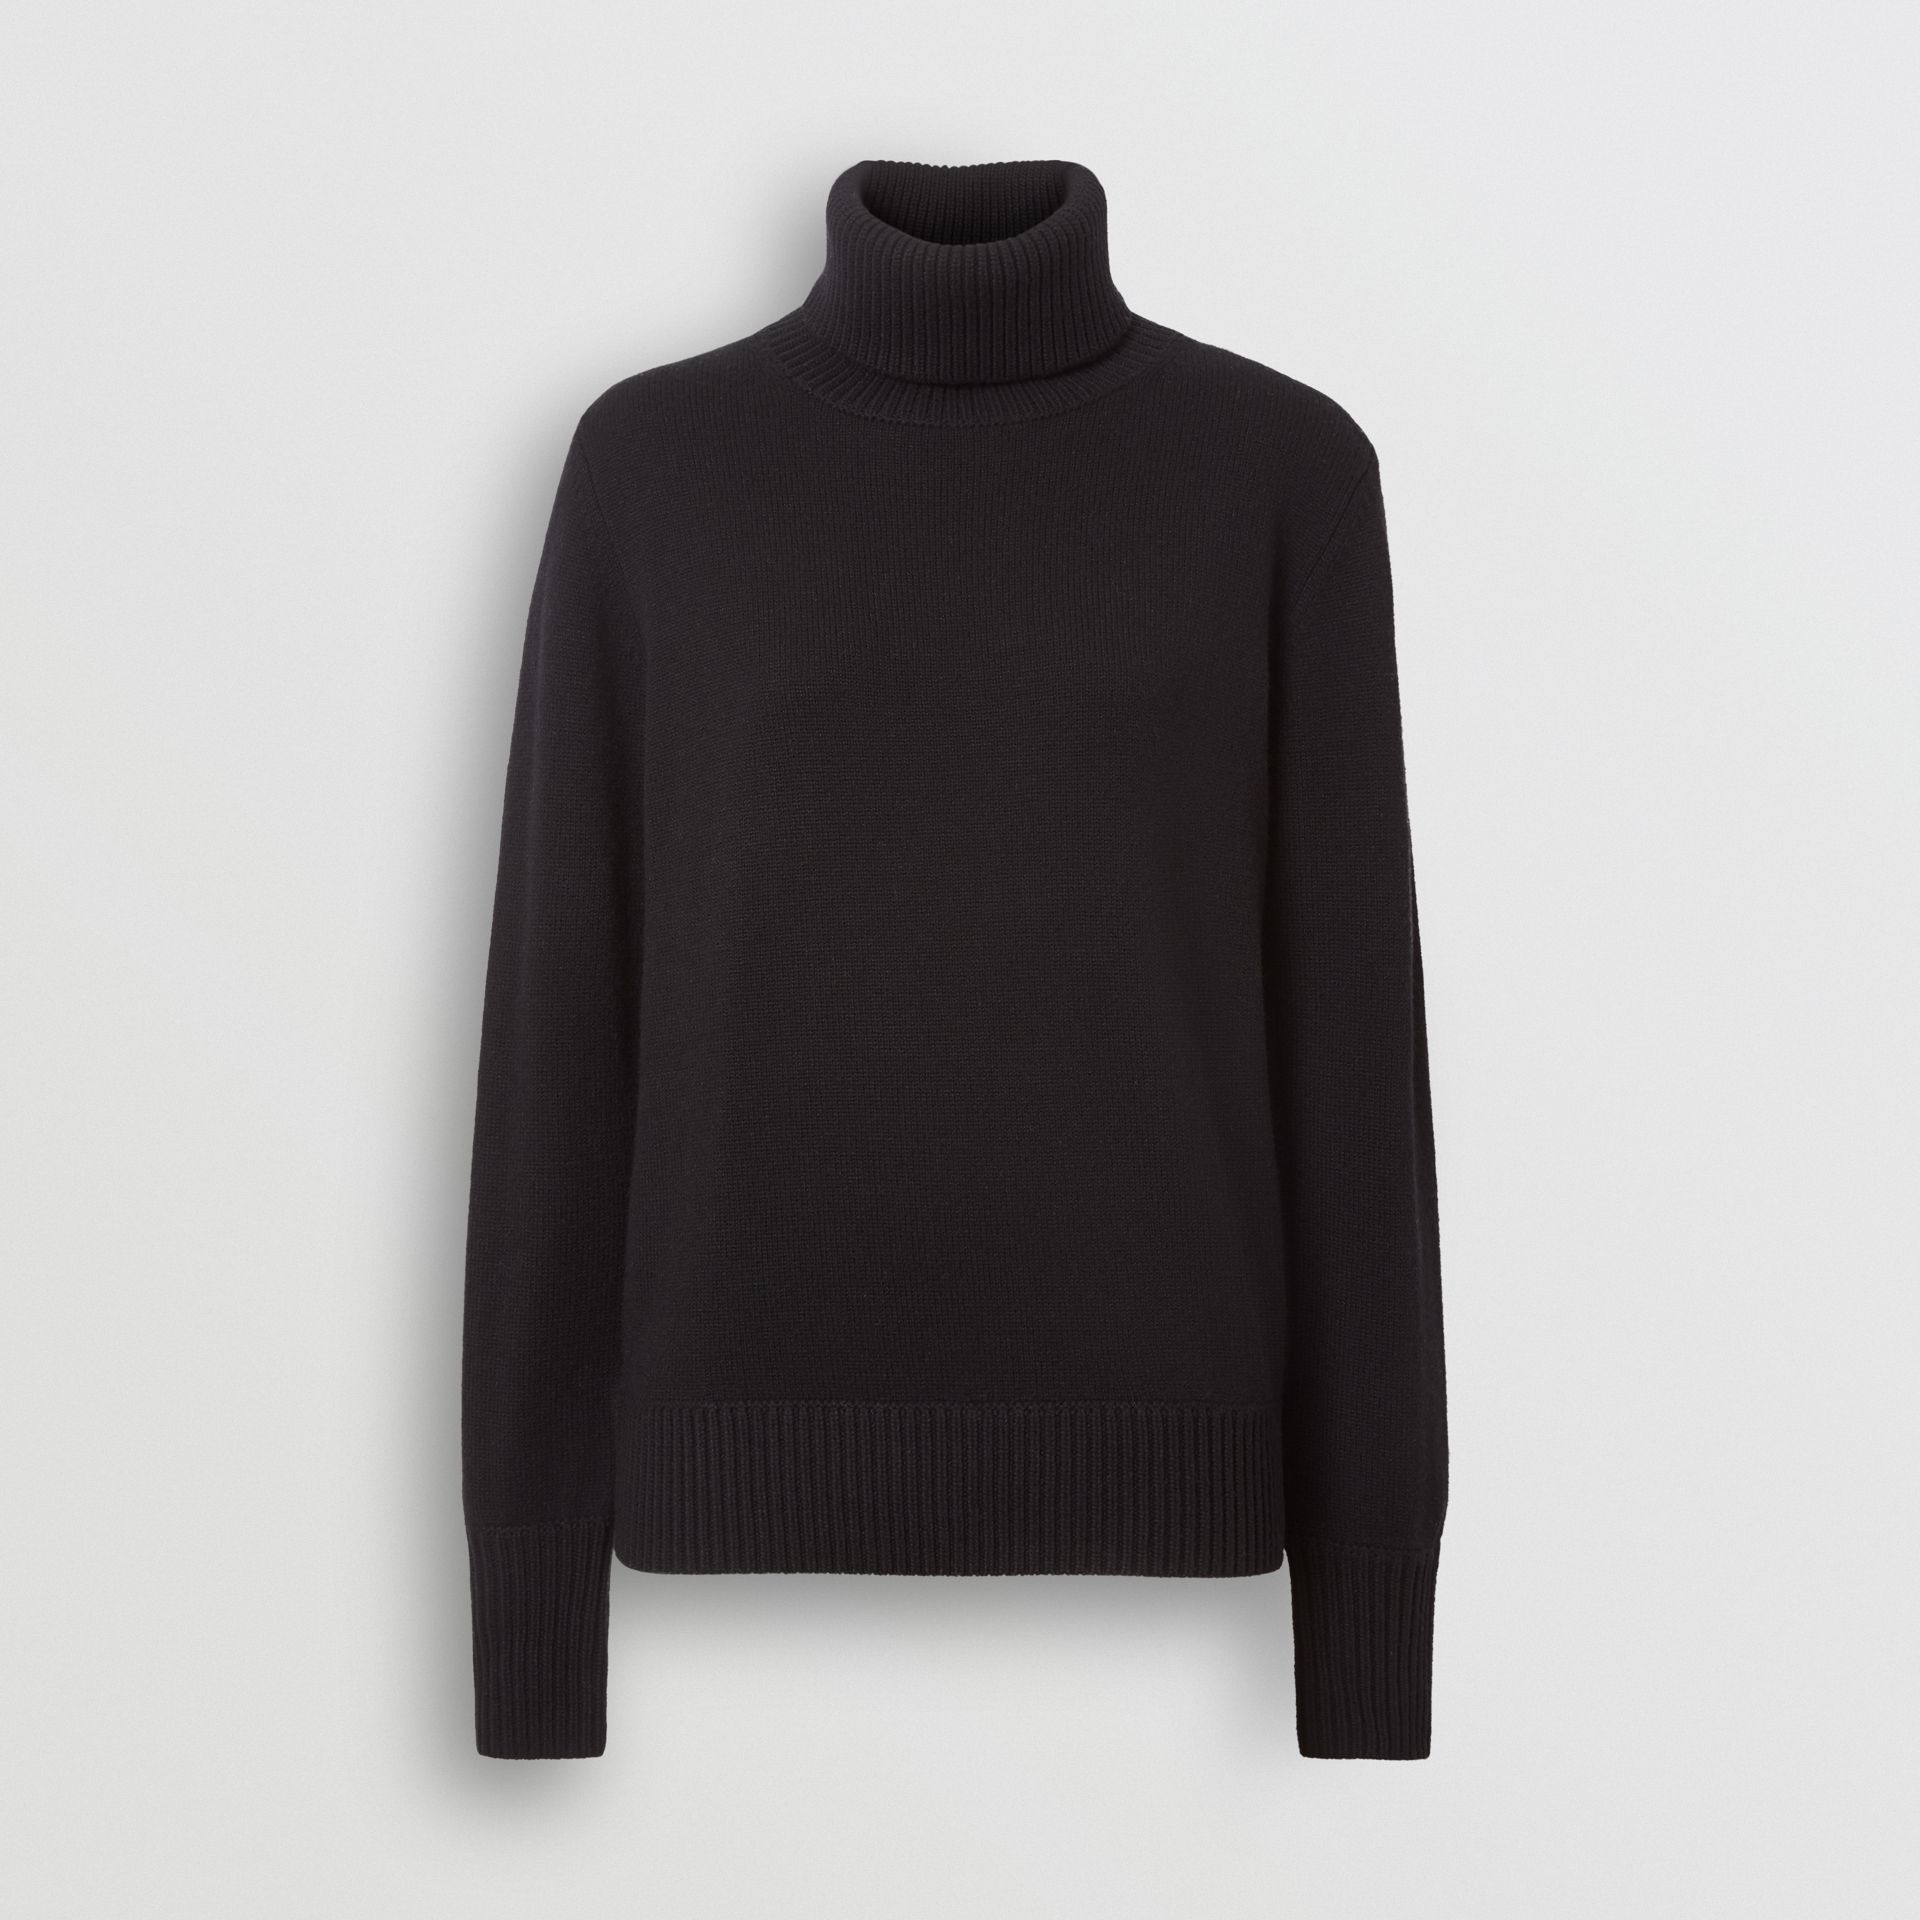 Embroidered Crest Cashmere Roll-neck Sweater in Black - Women | Burberry Australia - gallery image 3